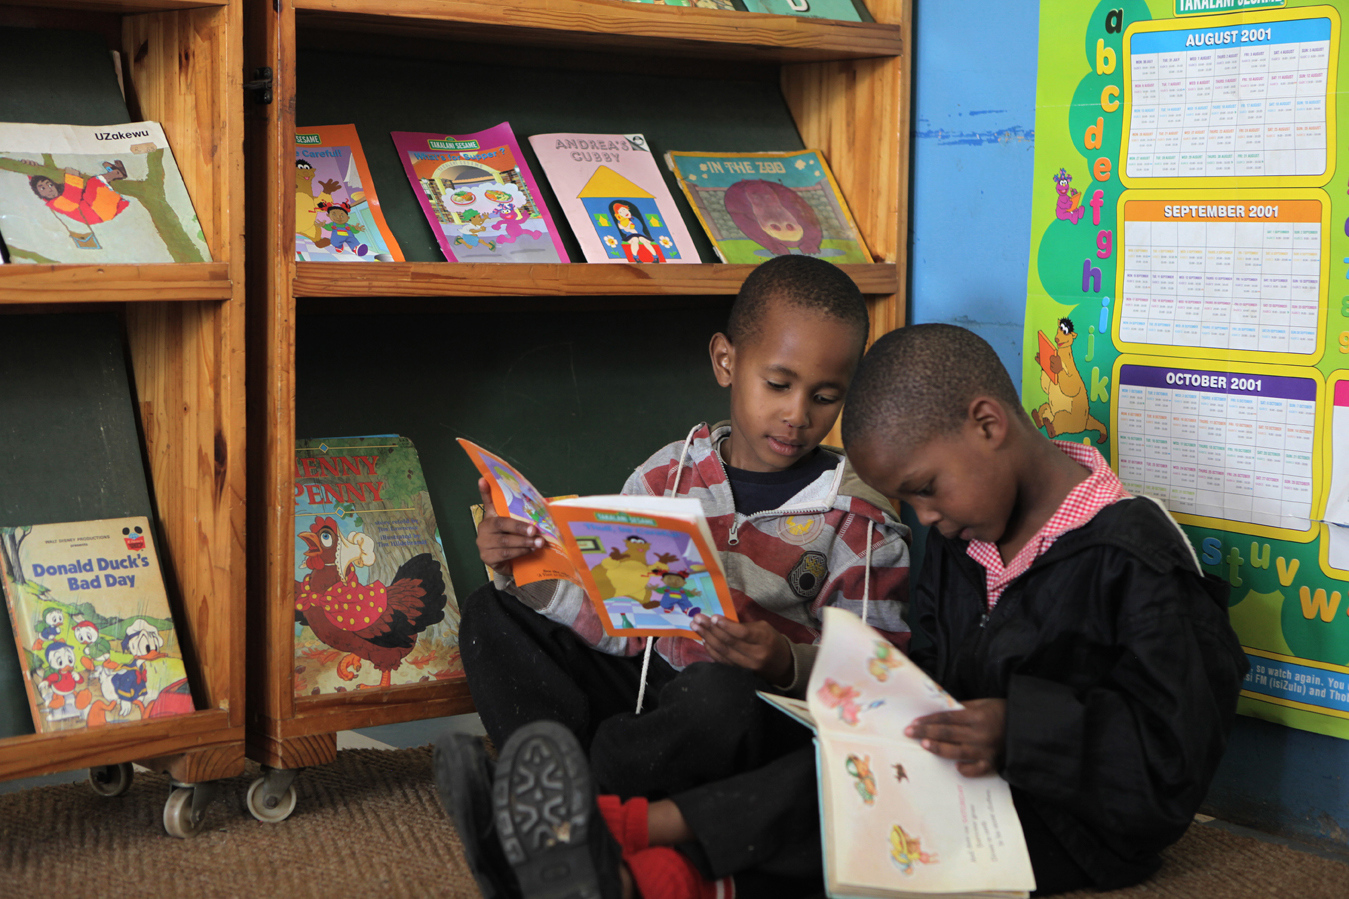 Nhlakanipho, 4, and Lubabalo, 4, read books at the Khulakahle David Beare ECD Centre on the outskirts of Durban in the eThekwini district. Principal Nokthula Zulu first opened as a crèche in 1987, responding to the need for children to be cared for while their parents were at work, and registered as a formal ECD centre in 1998. Over 92% of preschool children in KwaZulu-Natal attend unregistered ECD centres (crèches). Save the Children, operating in KZN for over 50 years, recognised the need to support crèches in the area with better management skills and access to learning materials, as well as running the crèche forums and supporting crèches with registration to become ECD centres.